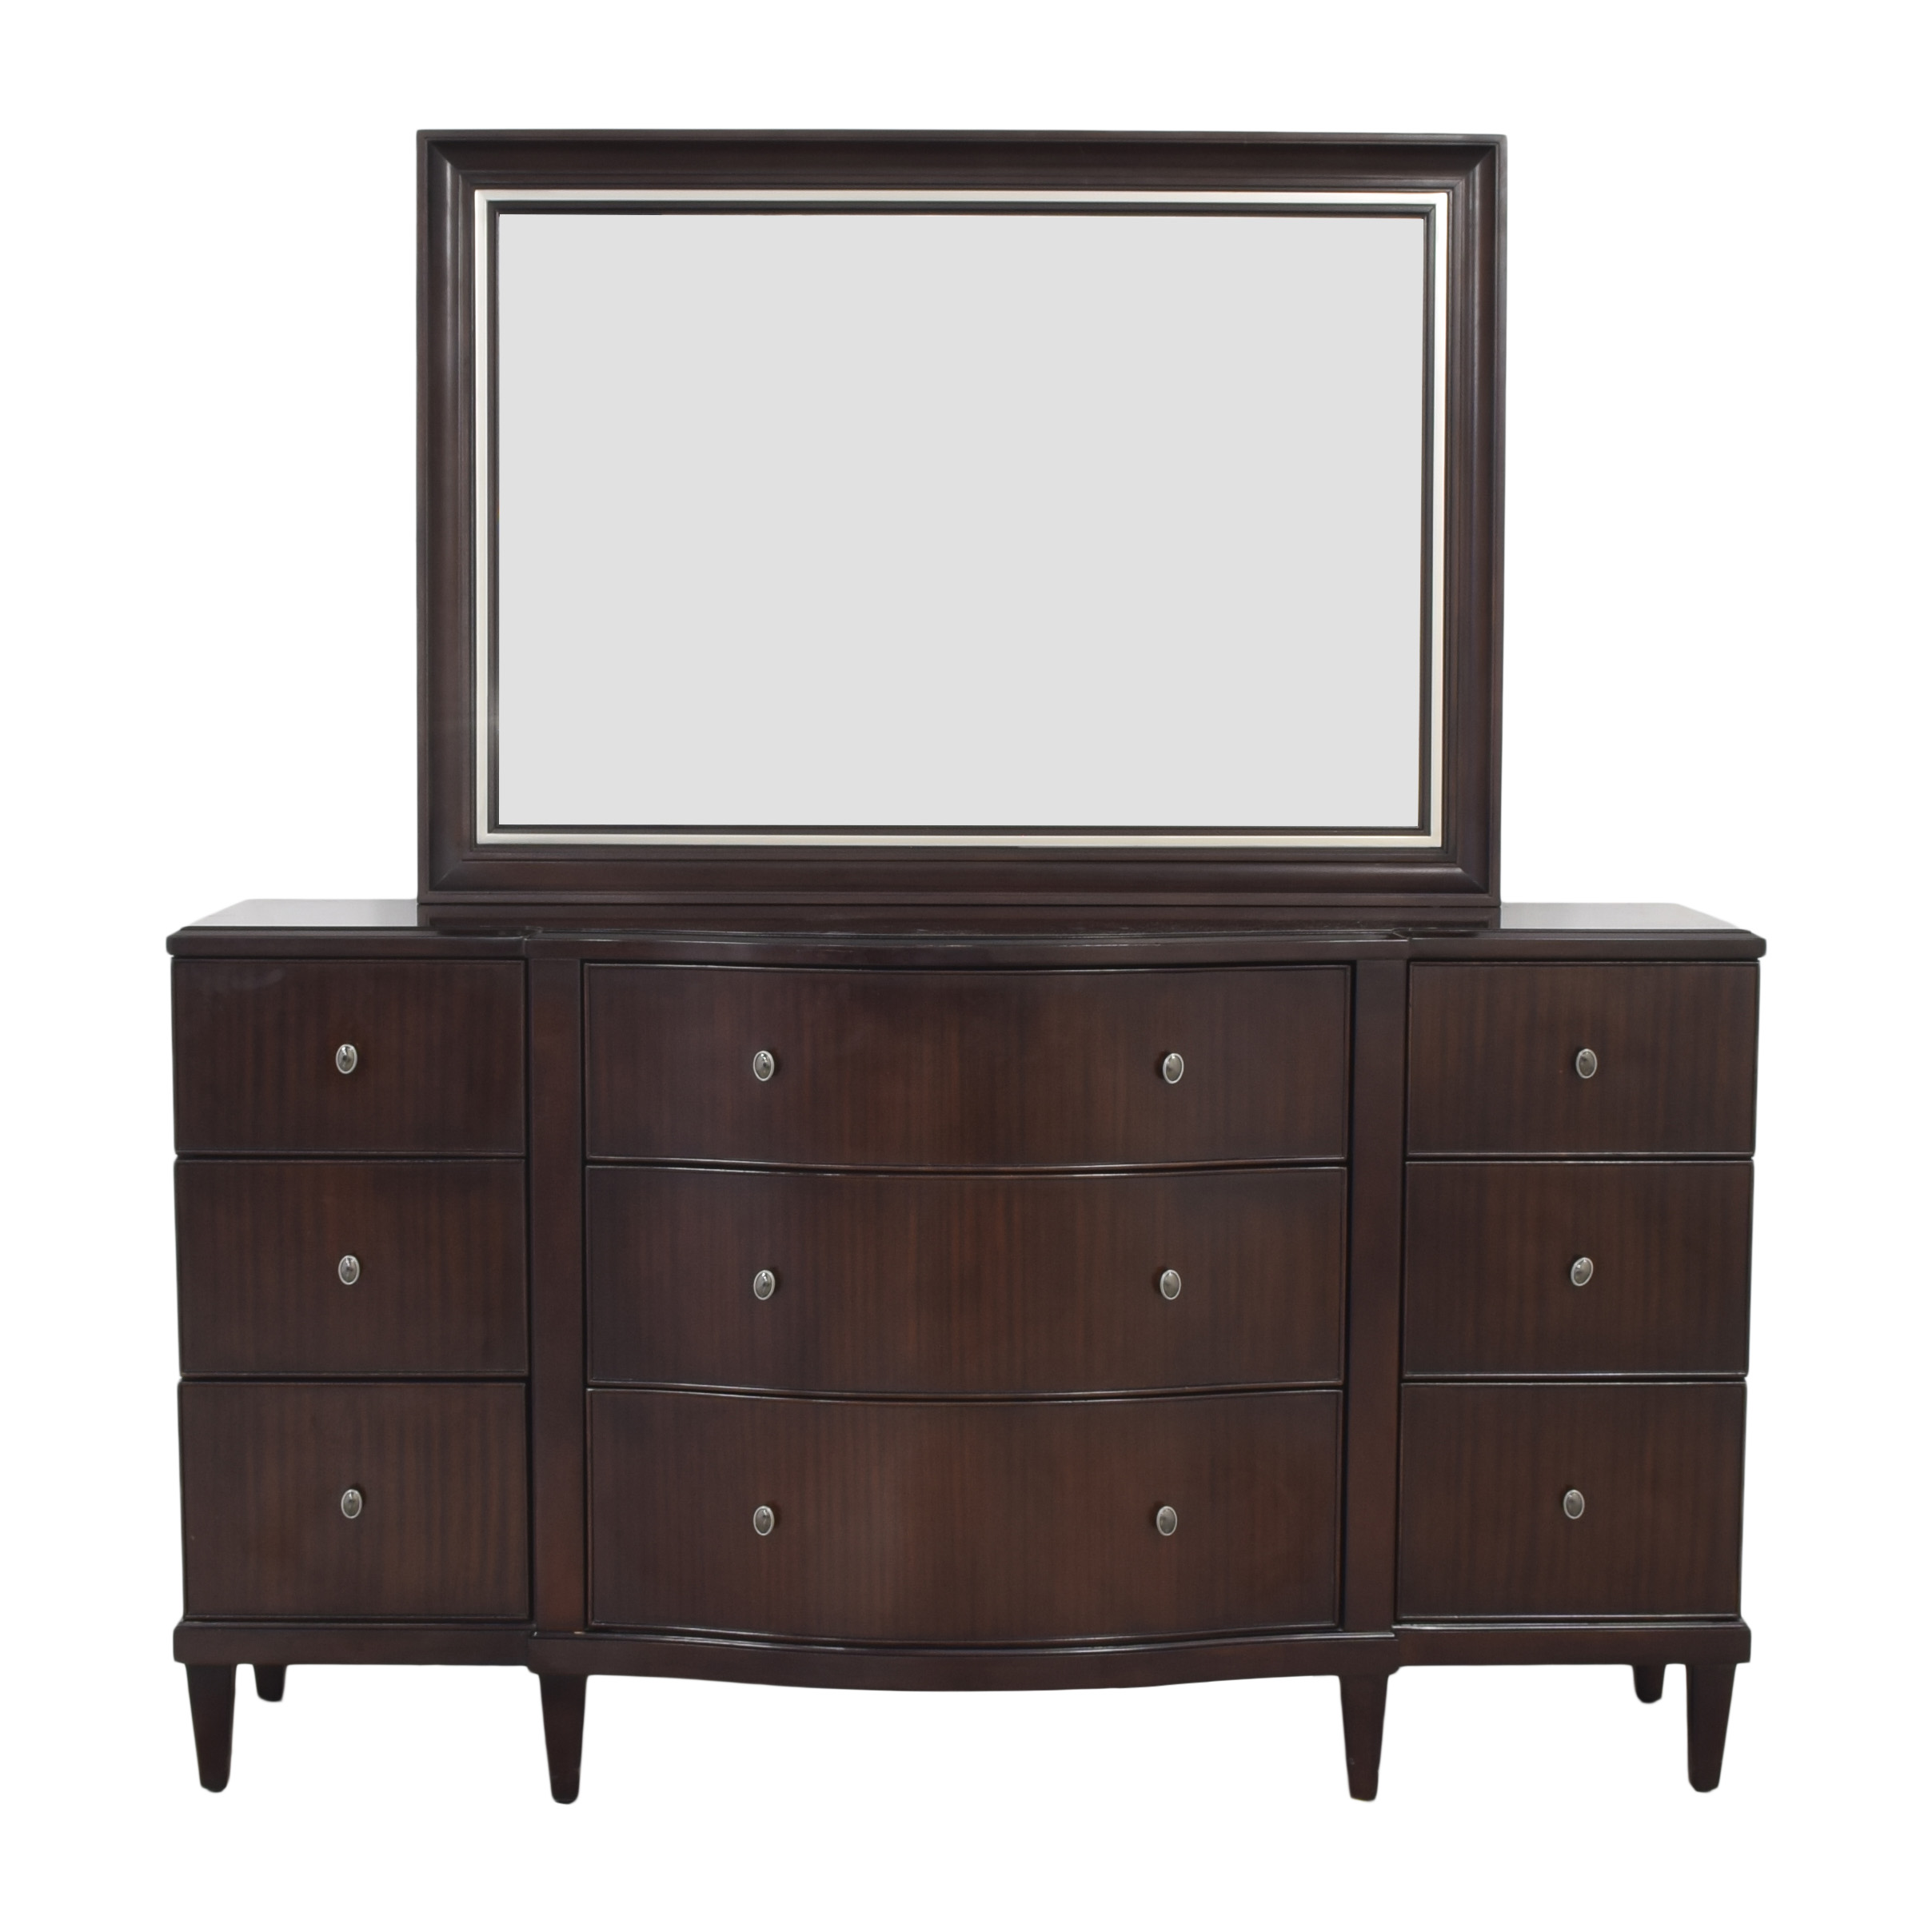 Bernhardt Westwood Contemporary Dresser with Mirror sale